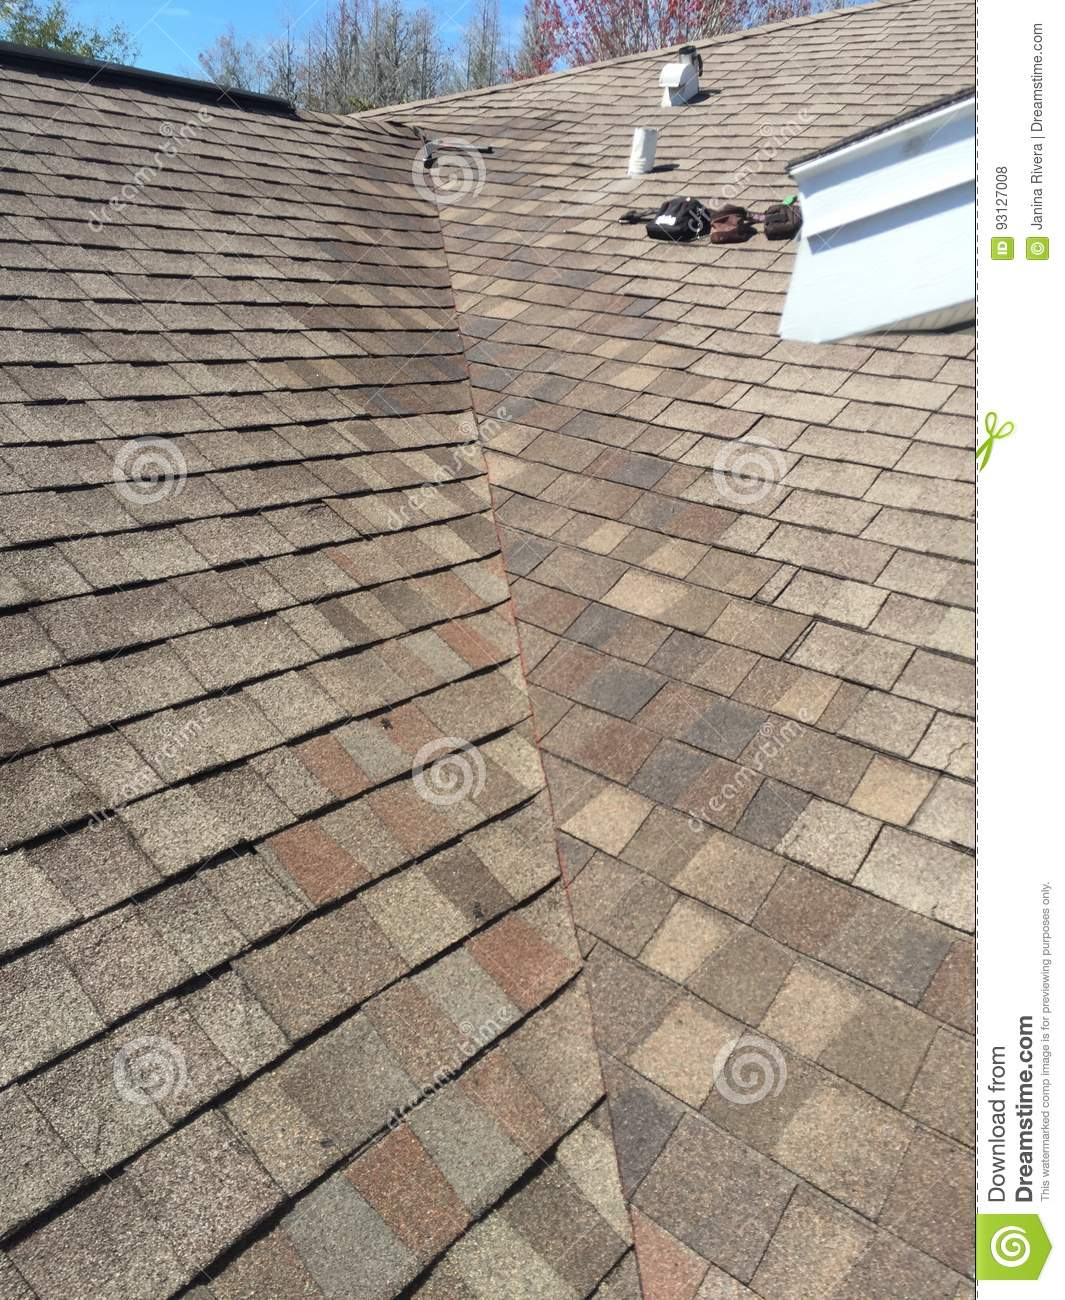 exemplary roof leak repairs on valley of residential shingle roof roofing stock photo image of house roof 93127008